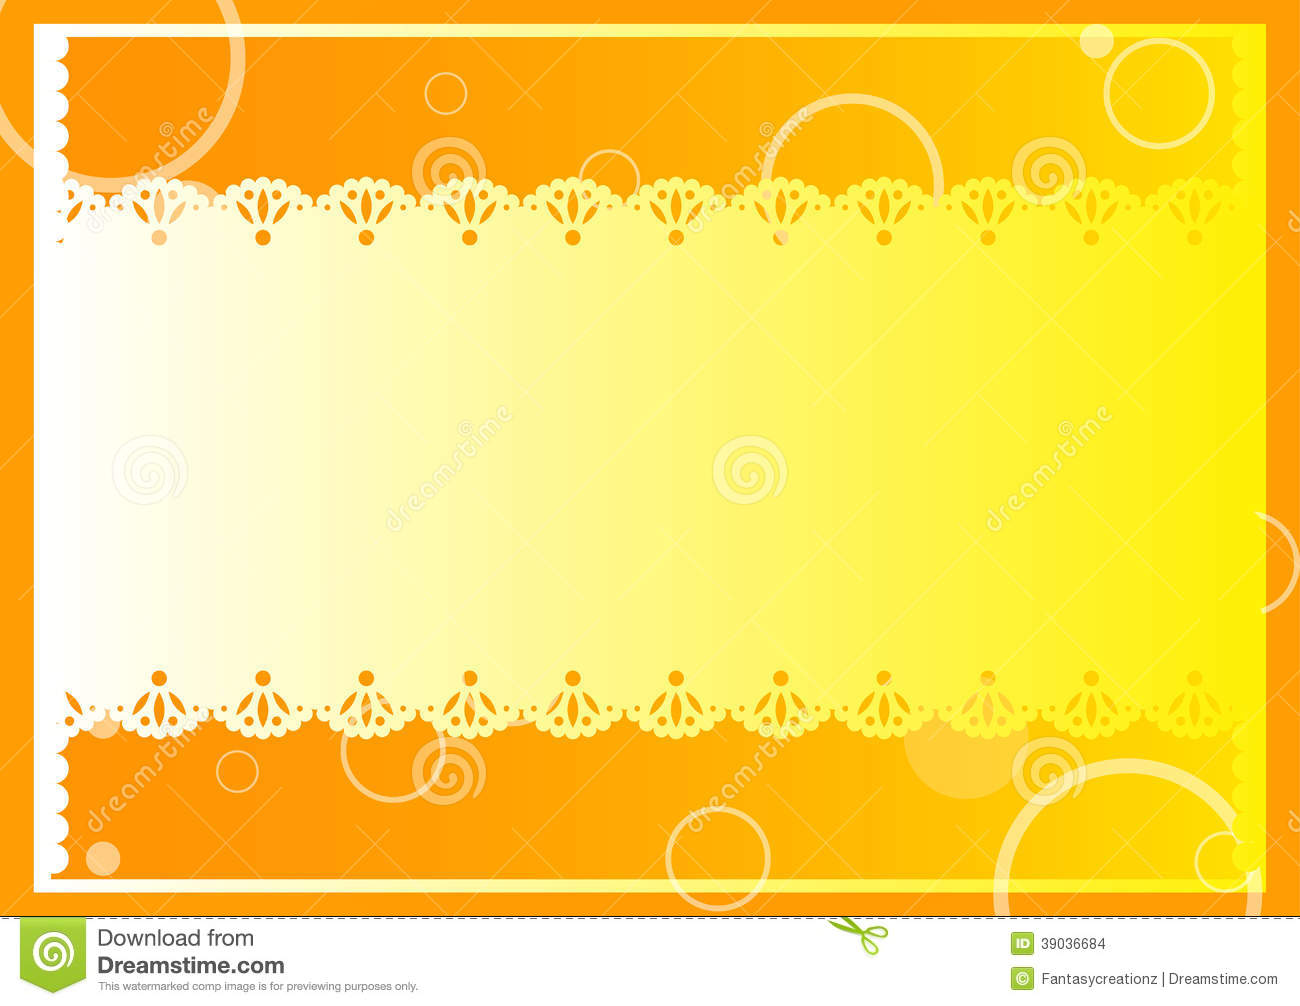 Royalty Free Stock Photography Fall Season Vintage Banner Global  position Conc Autumn Tree Falling Leaves Over World Illustration Eps Vector File Image33557867 furthermore Stock Illustration Cheerful Yellow Pepper Cartoon Character Cute Smiling Thumbs Up Isolated White Background Eps File Available Image42445530 also Royalty Free Stock Images Social Media Colorful Banner Icons Set Circle Layout Eps File Version Illustration Contains Transparencies Layered Image32017459 as well Royalty Free Stock Image Seamless Ethnic Pattern Background Green Orang Colorful Mosaic Orange Yellow Colors Vector File Editable Scalable Easy Image34527786 likewise Stock Illustration Book Cover Annual Report Colorful Pencil Design Vector Illustration Image42504637. on file symbol thumbs up color